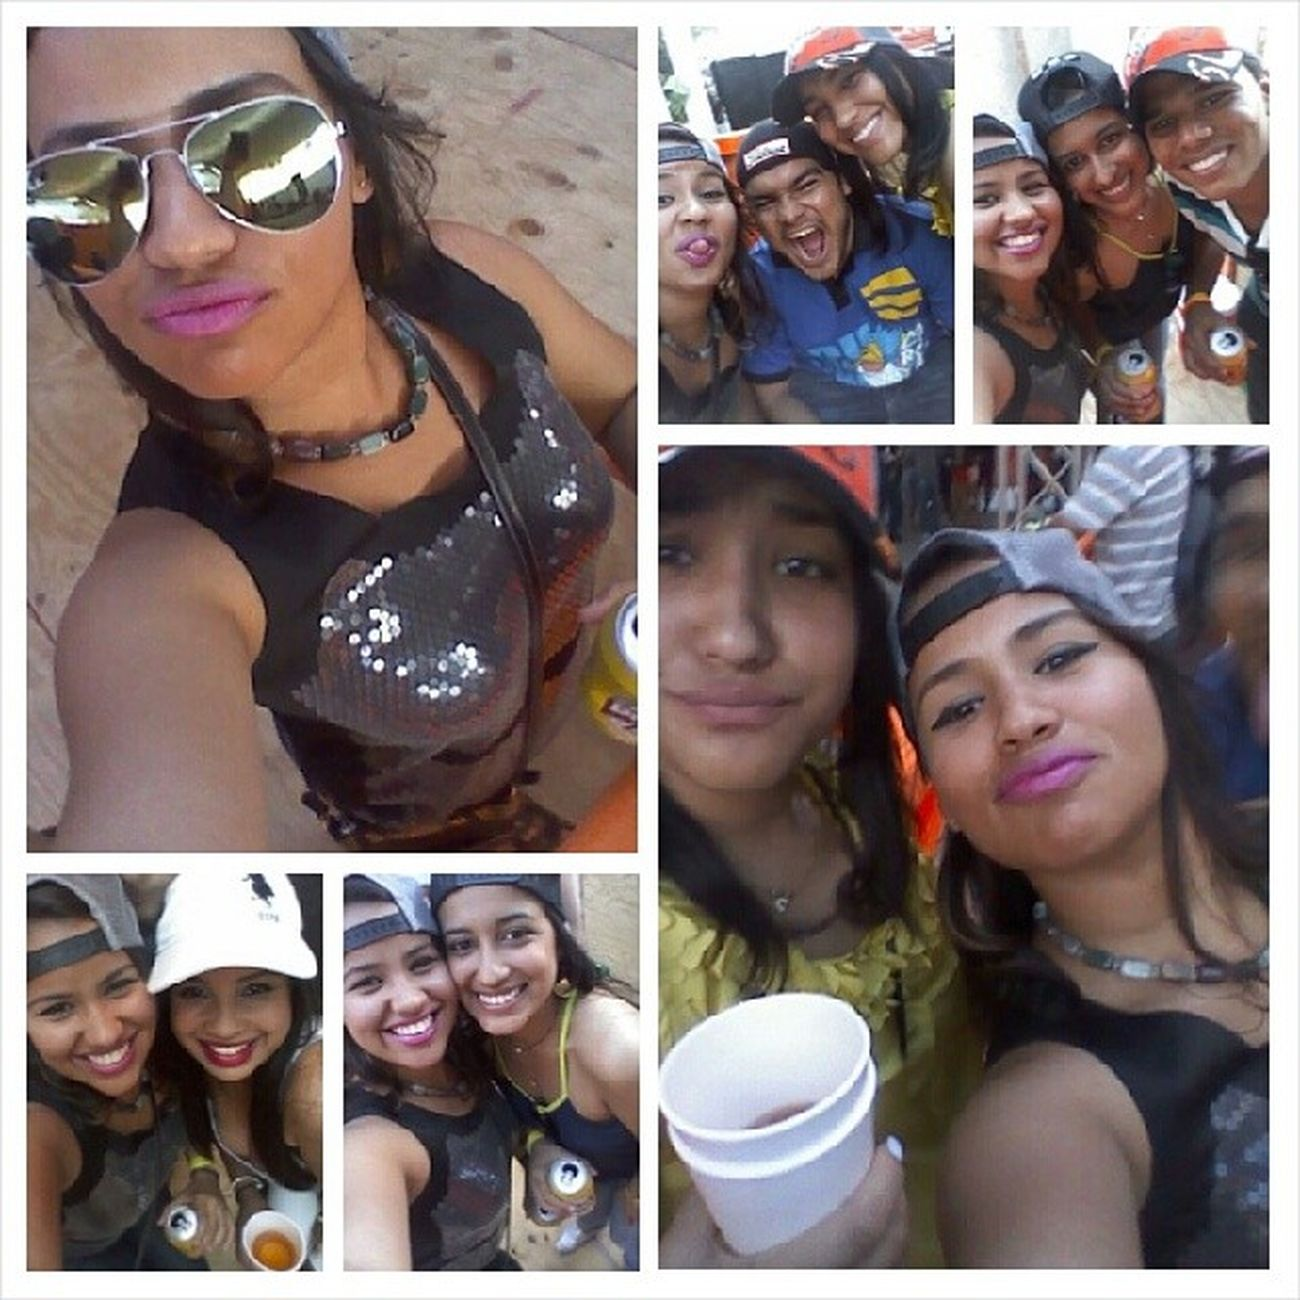 Cause everything's better when good vibes surround you Latepost Mao Coritas Thepeeps carnaval gentebella queserepita